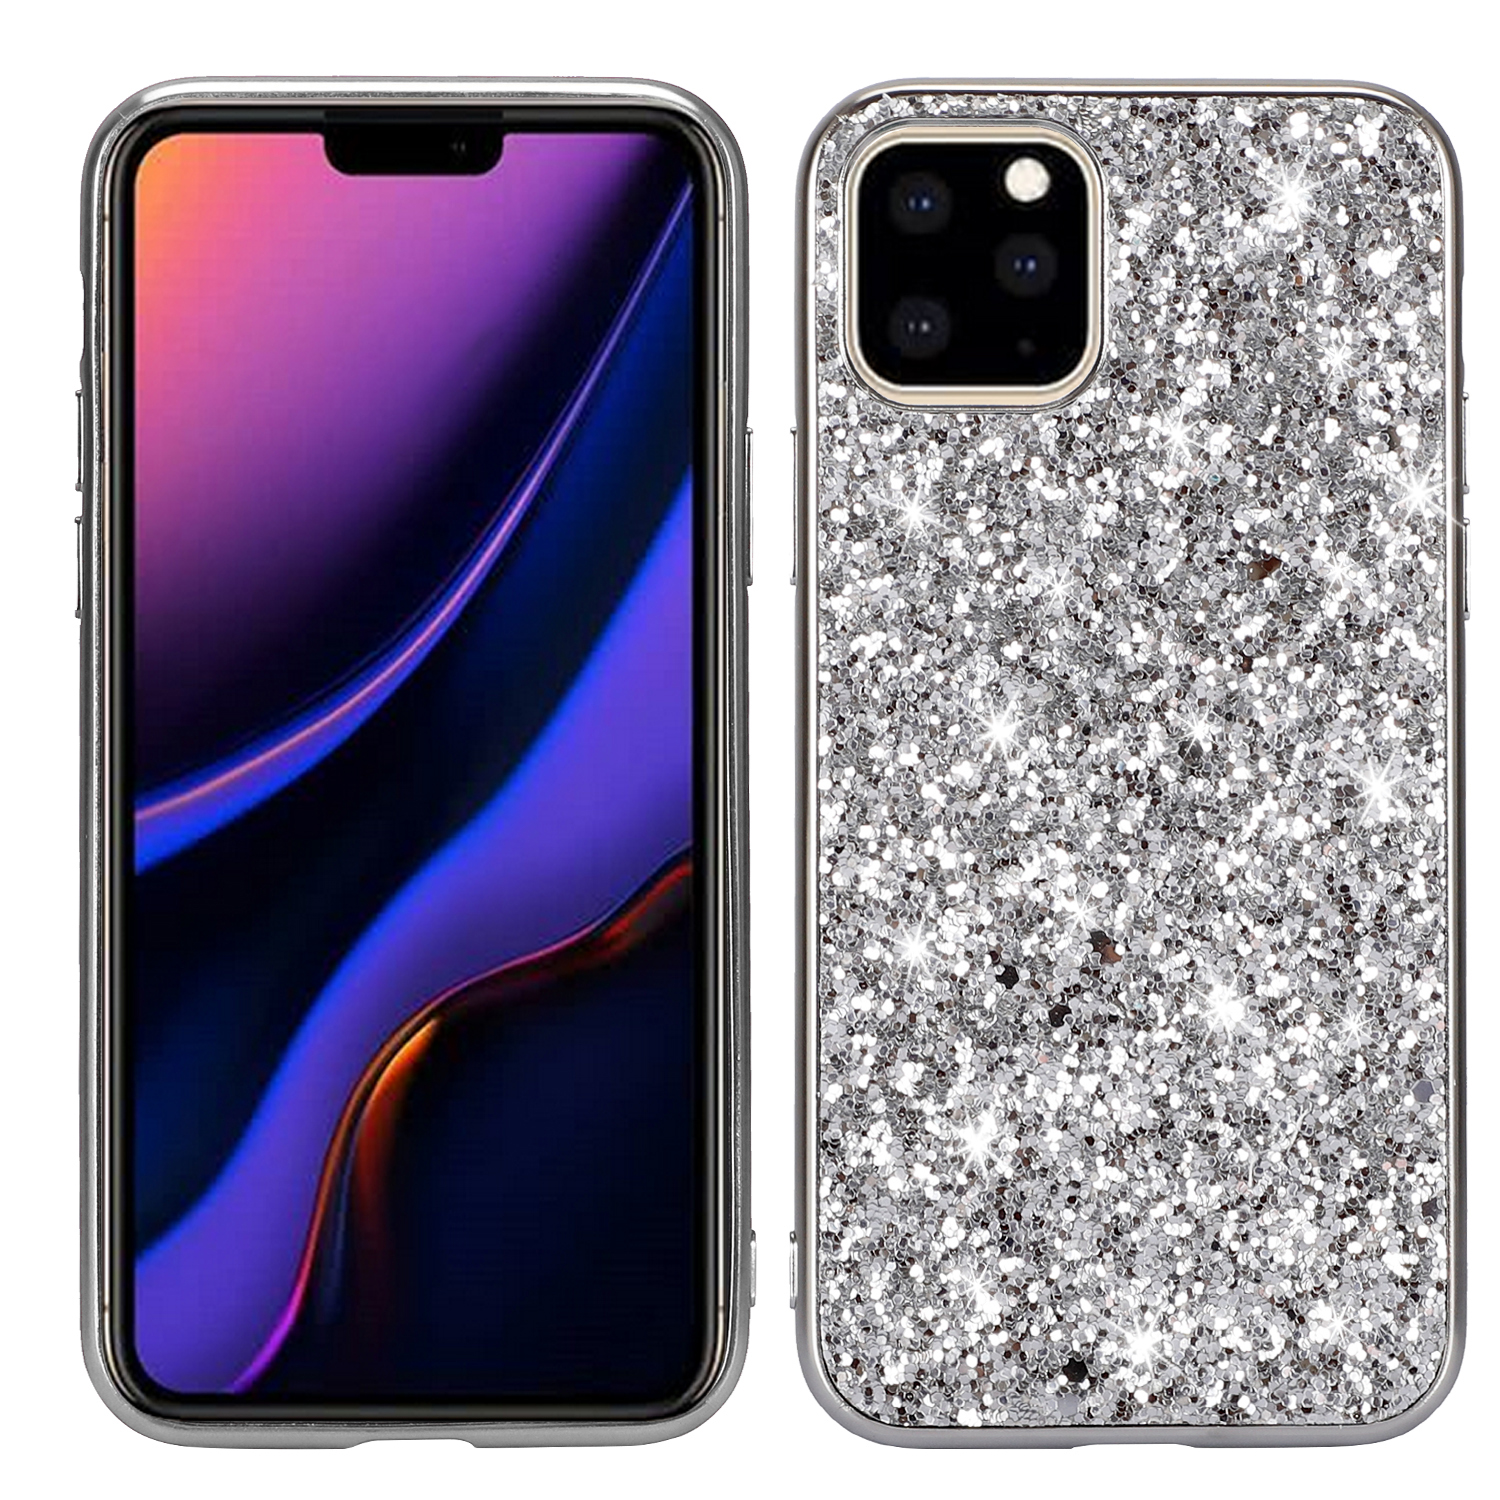 Shiny Glitter Girls Case for iPhone 11/11 Pro/11 Pro Max 27